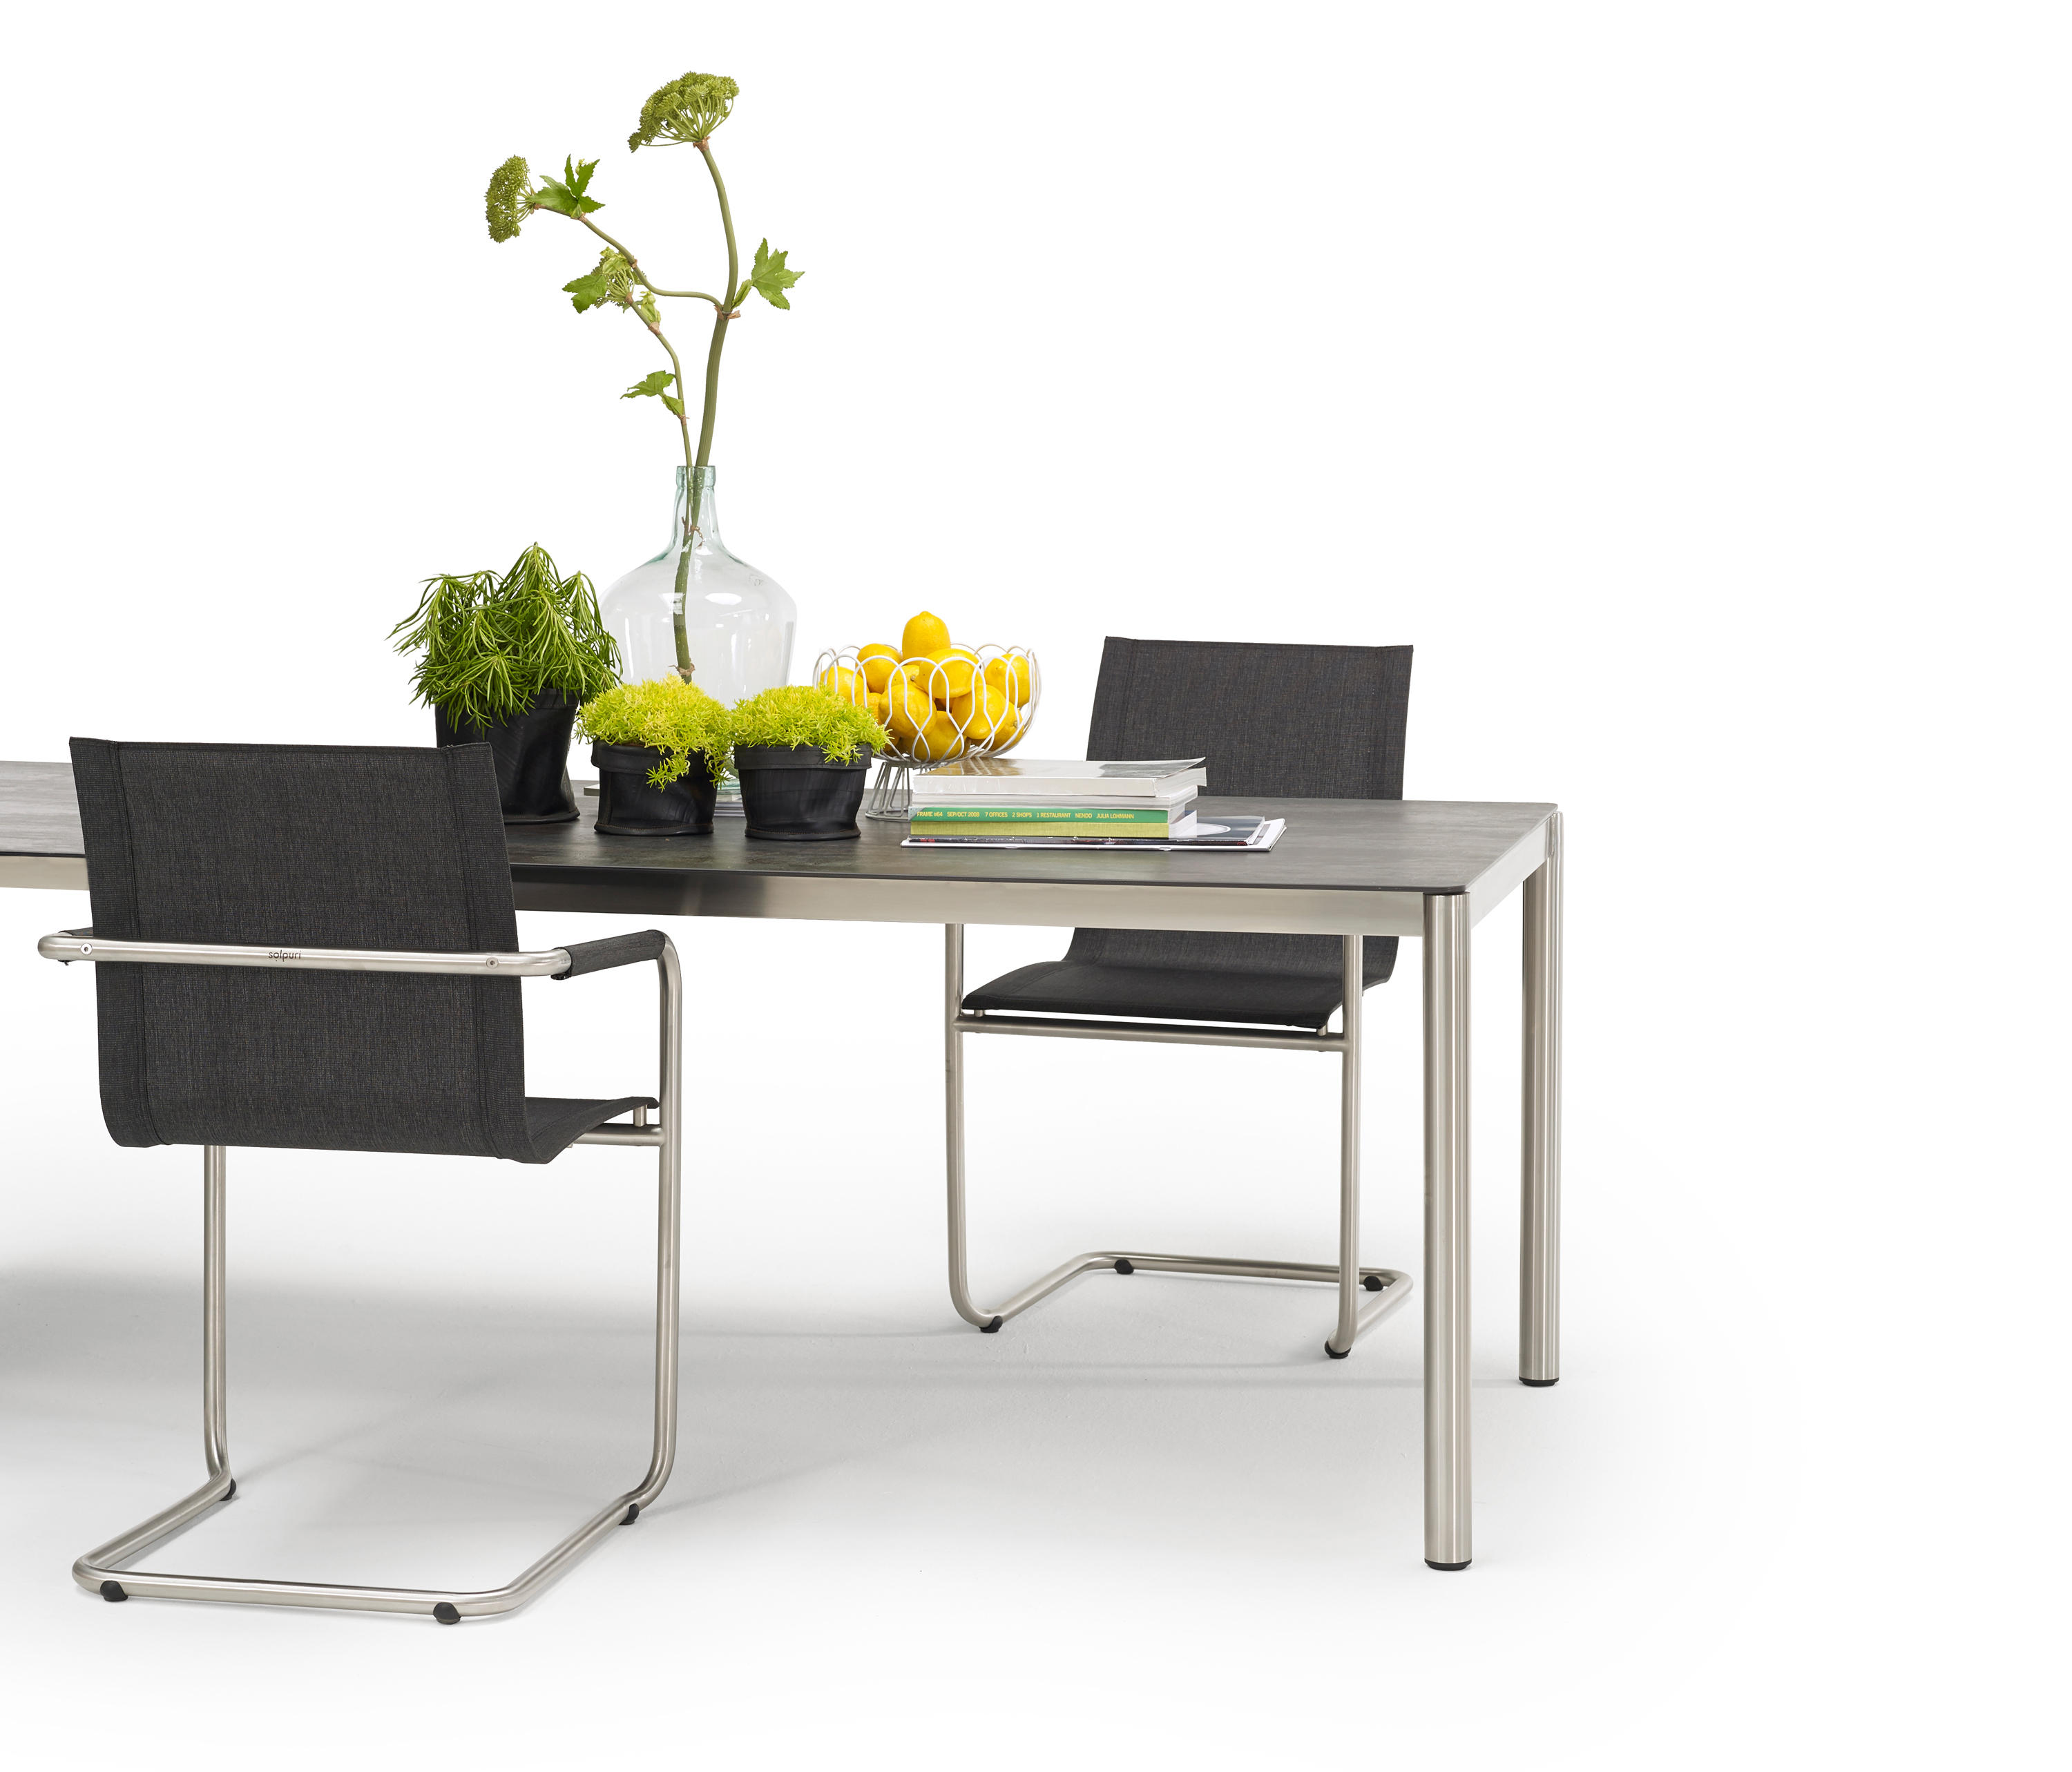 ... Trend Dining Table By Solpuri ...